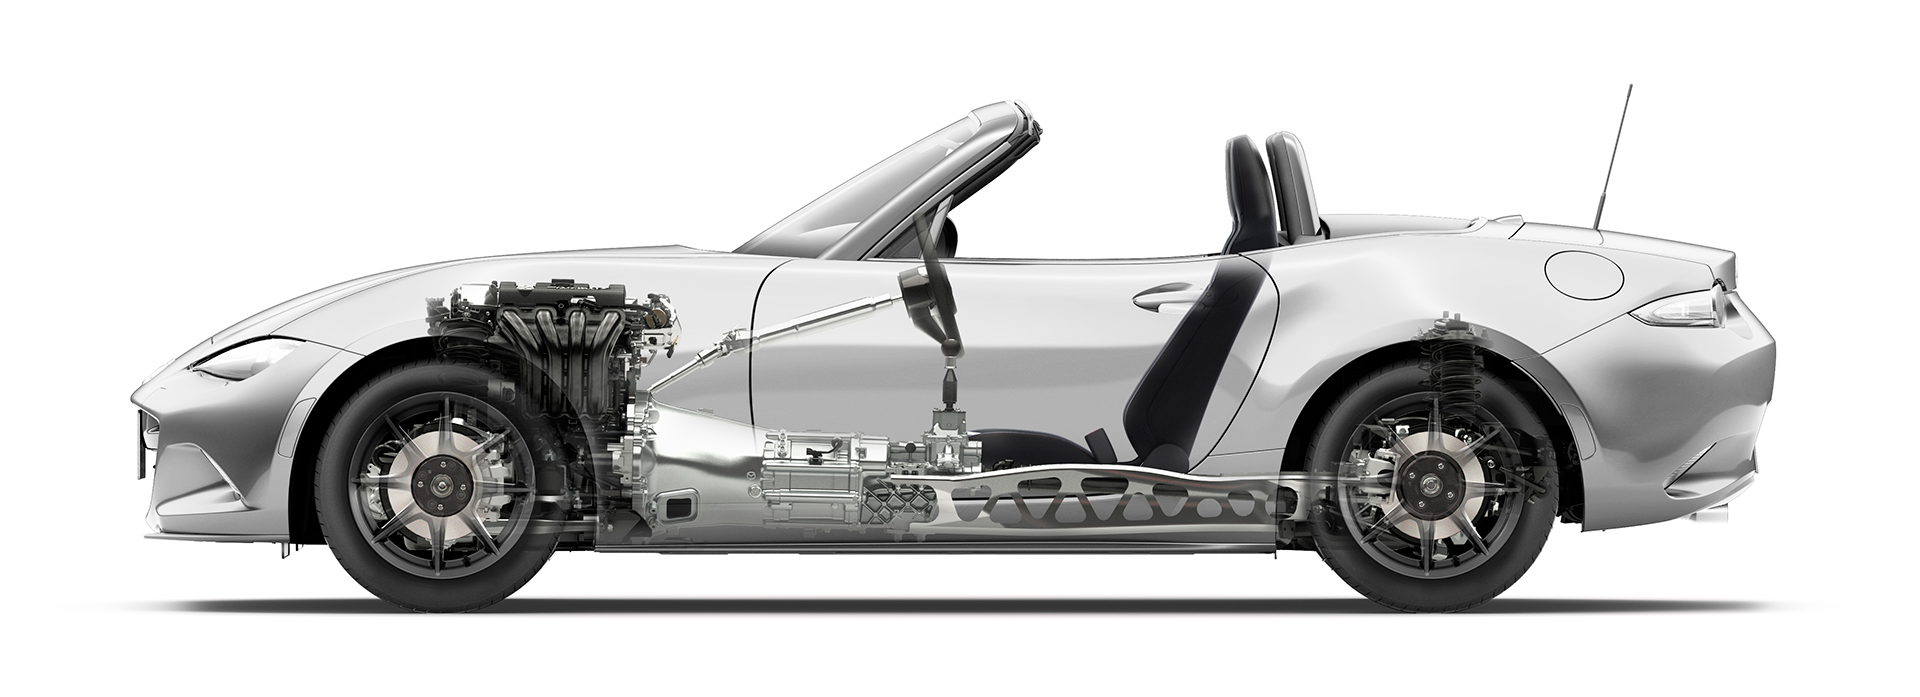 Mazda MX-5 - 2016 - side view powertrain